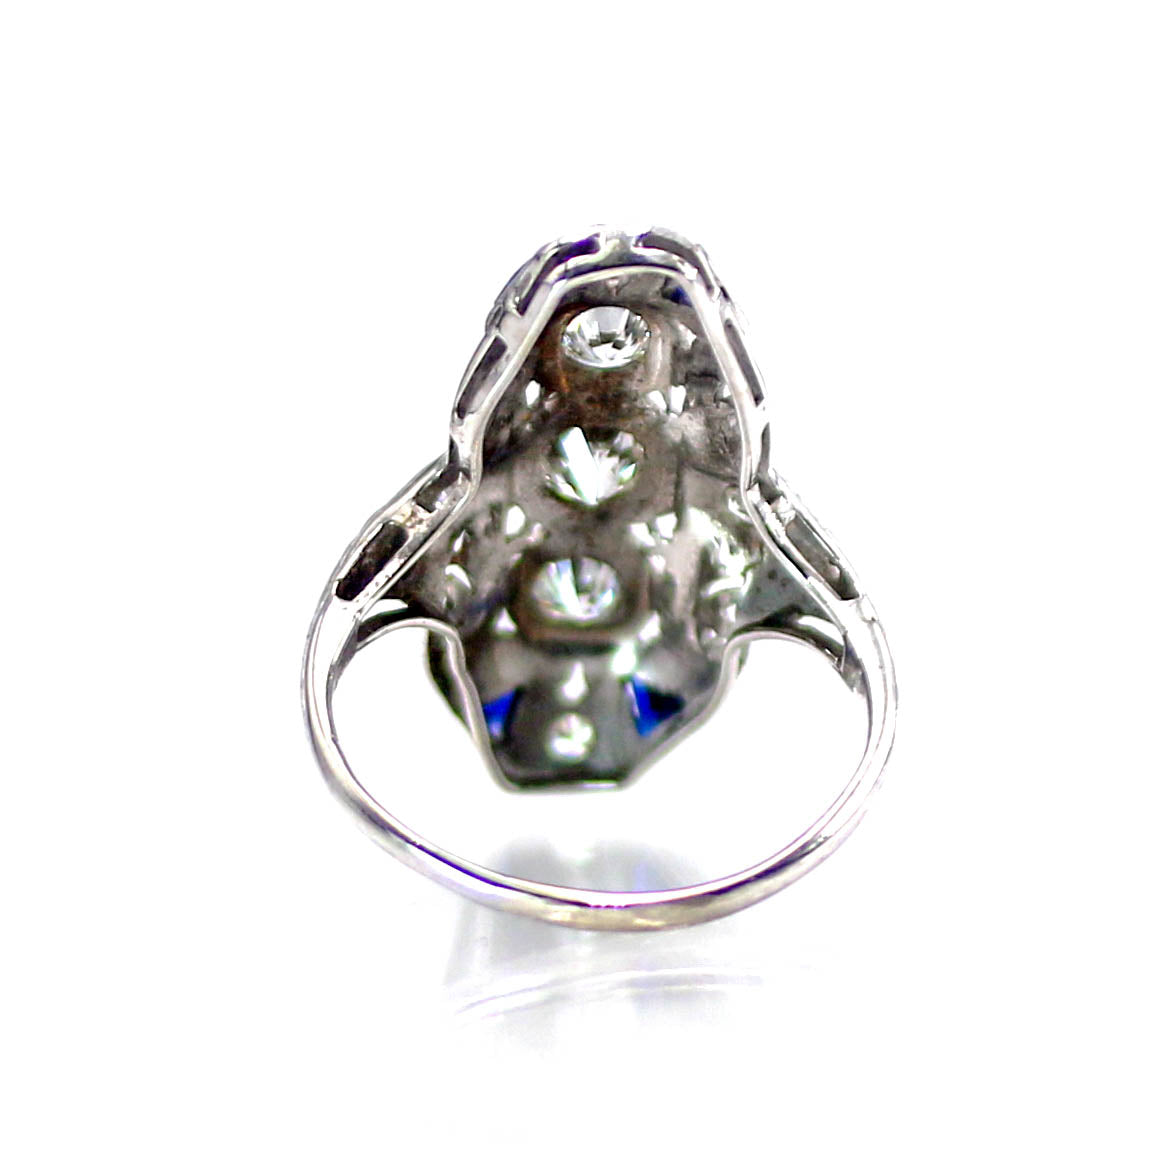 Art Deco Diamond & Sapphire Filigree Ring 14K White Gold